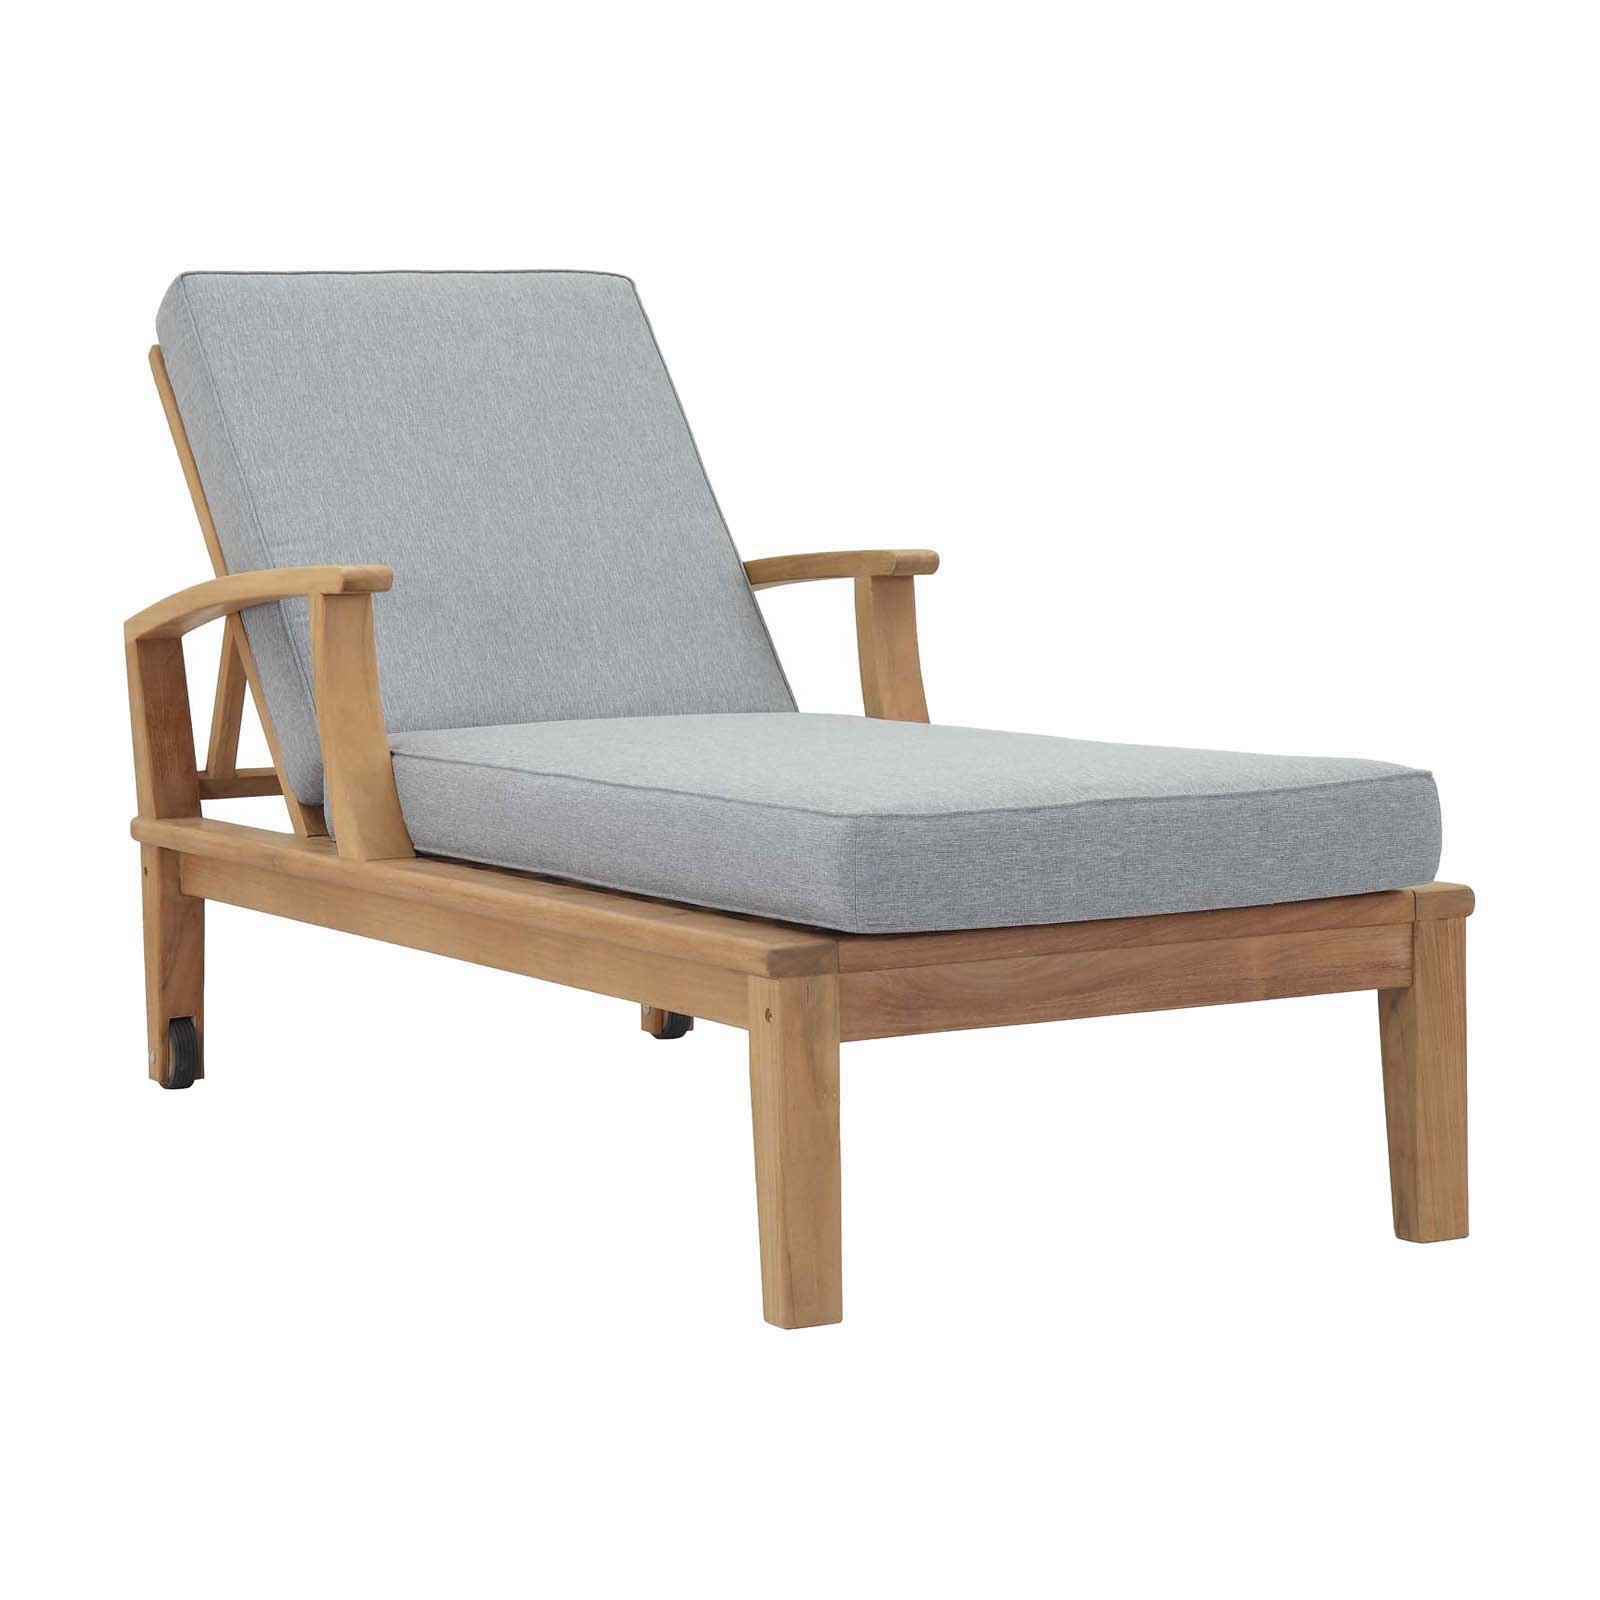 Modway Marina Outdoor Patio Teak Single Chaise in Natural White